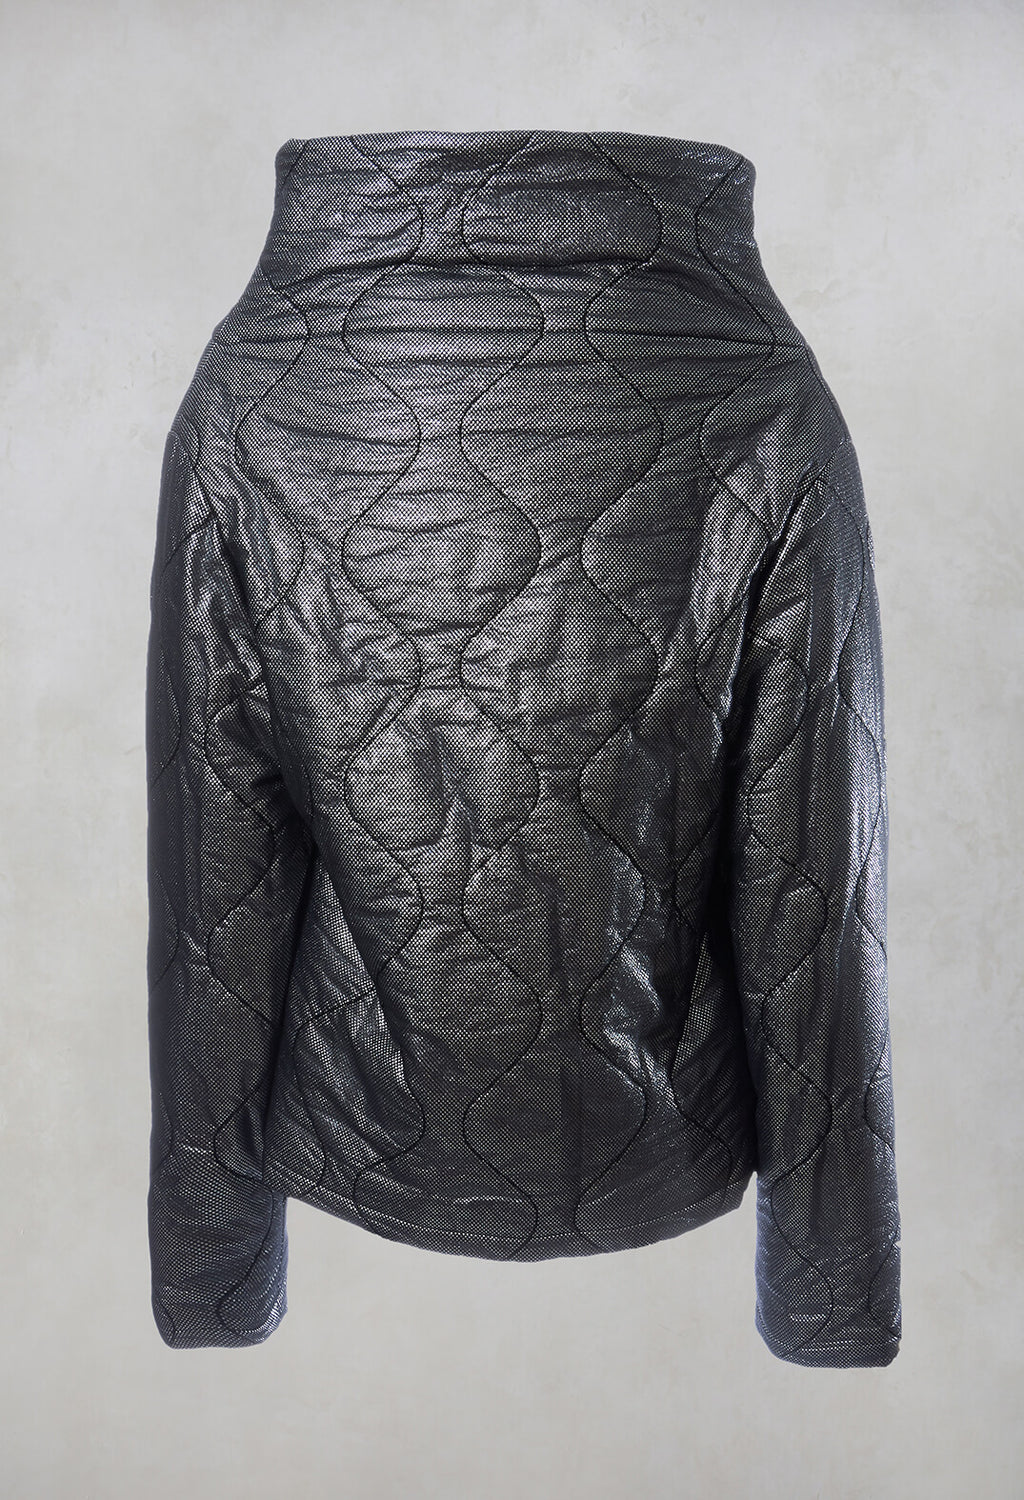 Metallic Puffer Jacket in Ortoclasio Black / Silver